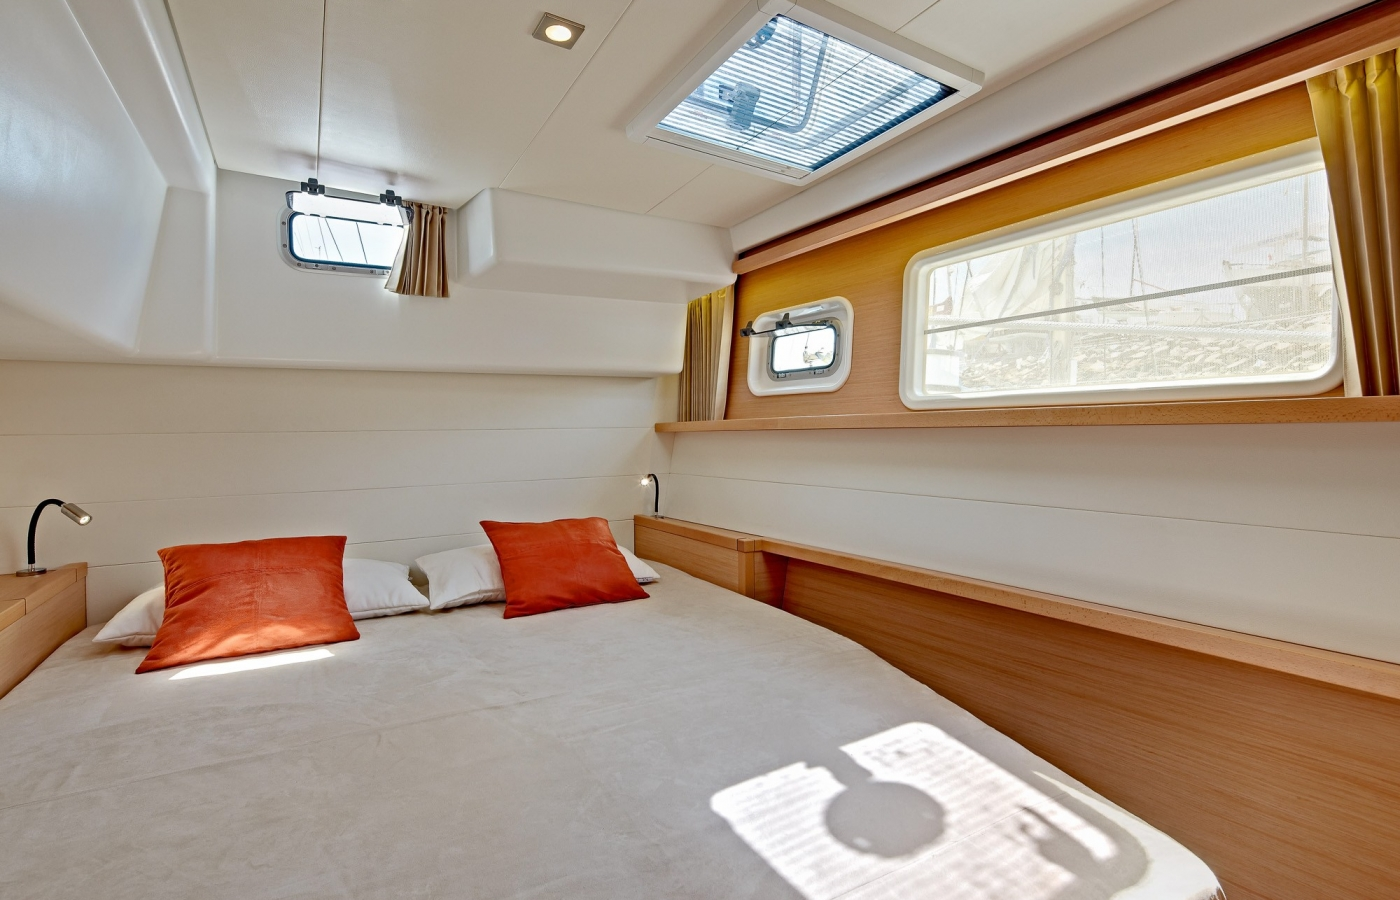 Comfortable cabins on board the Lagoon 450 with large windows